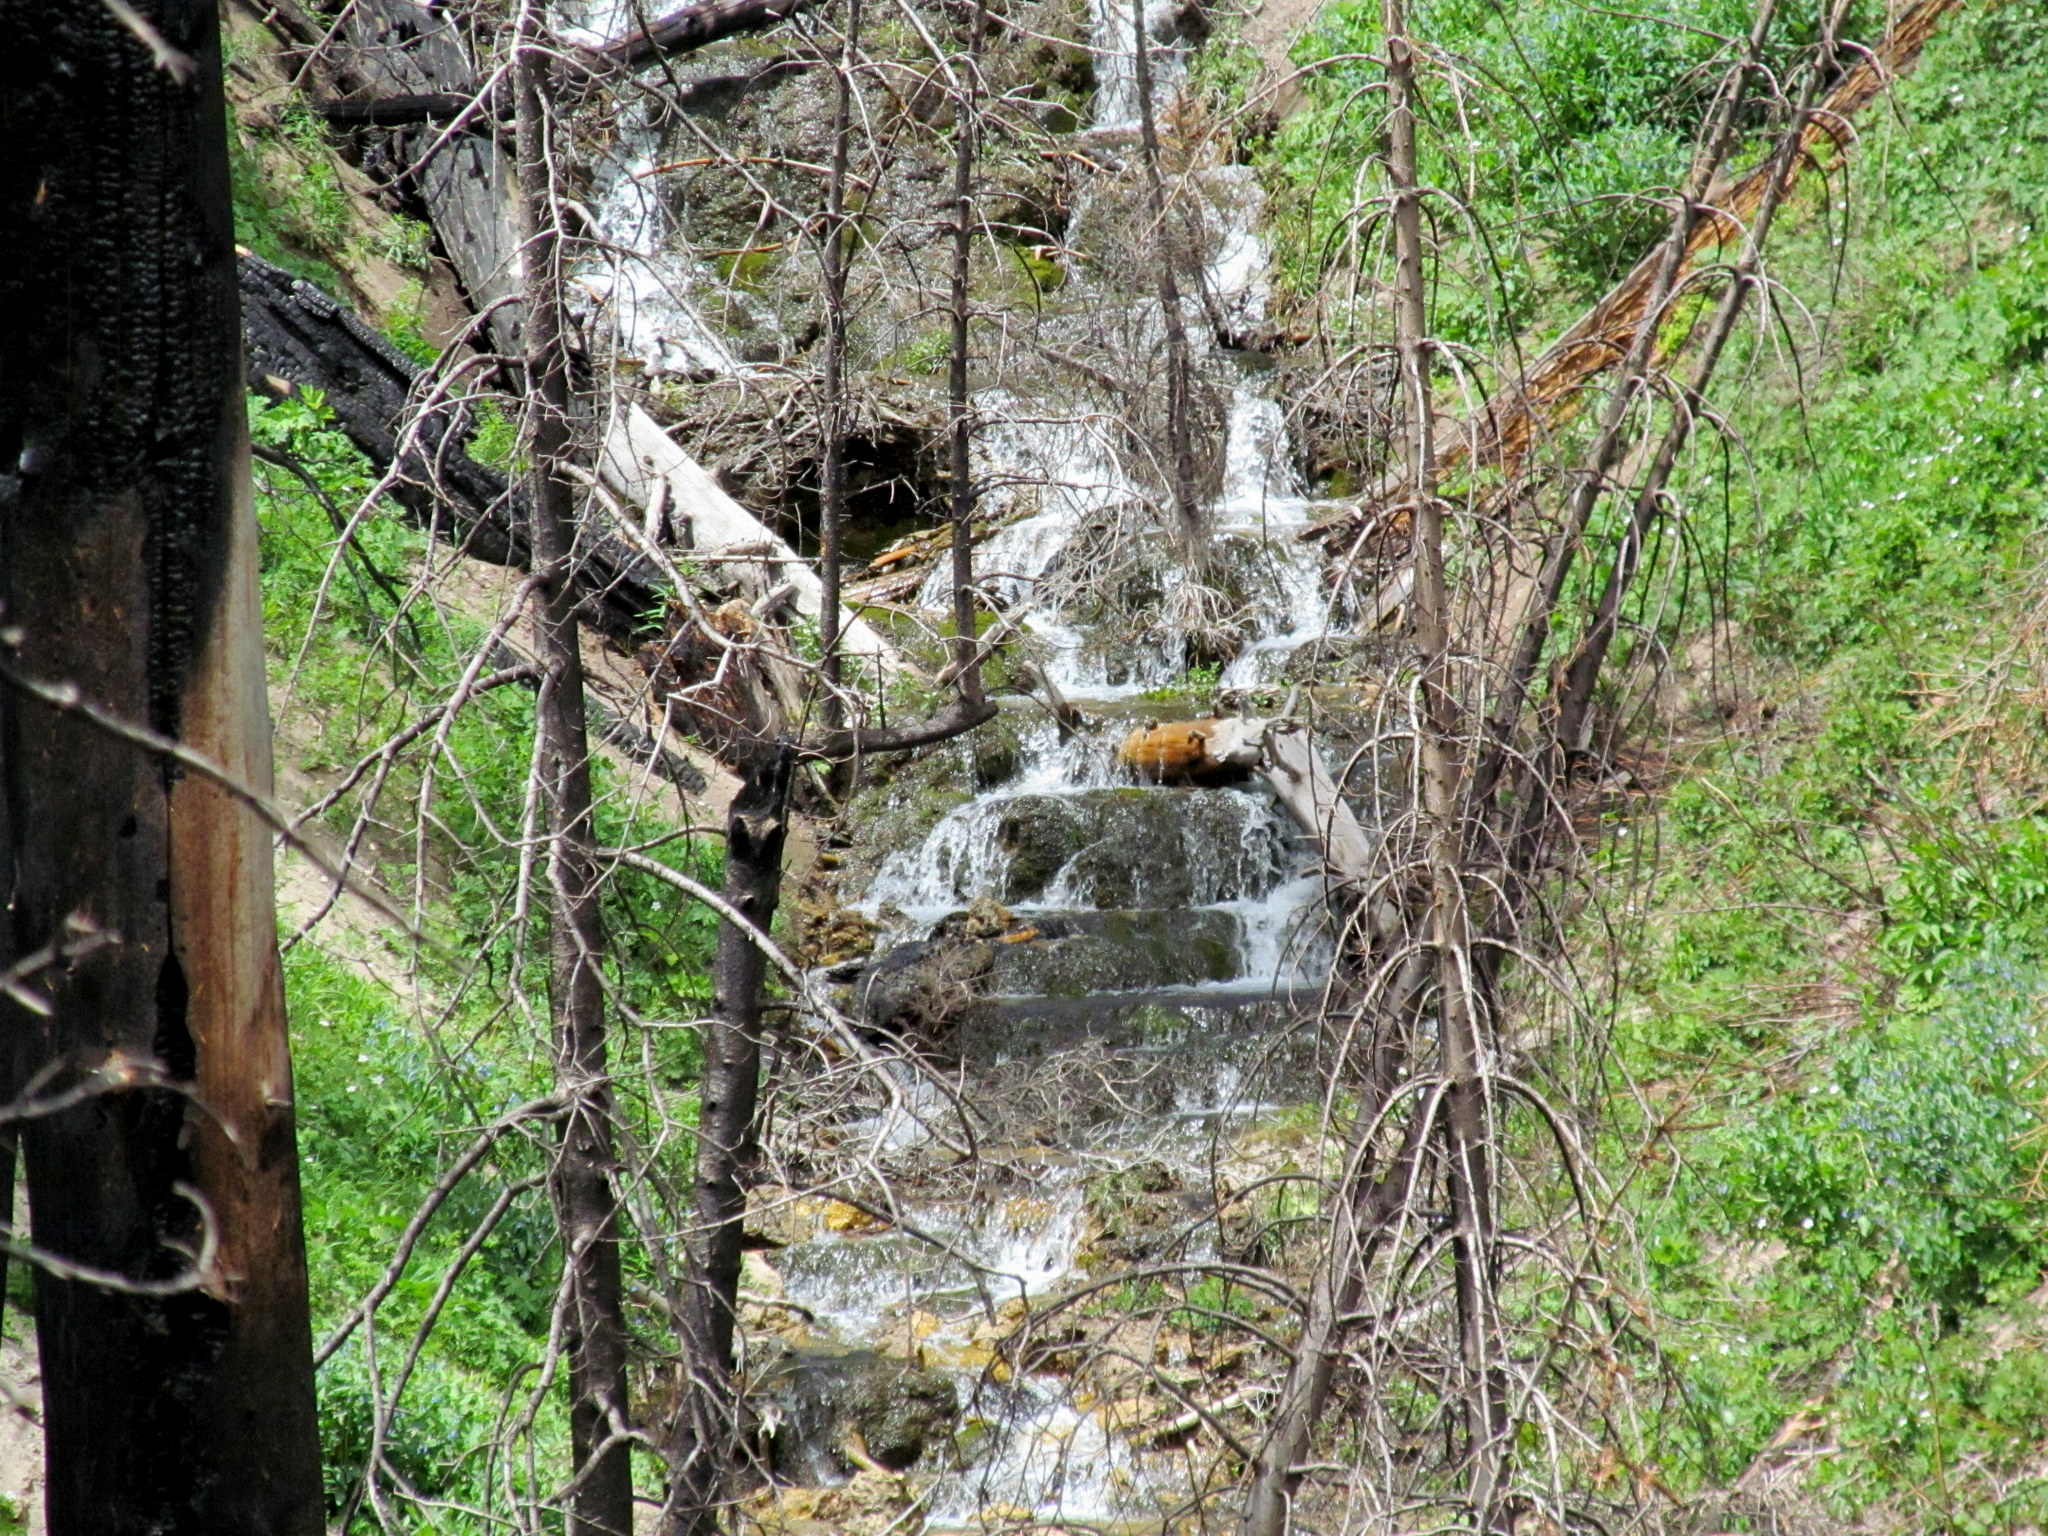 Photo: Falls above the sawmill